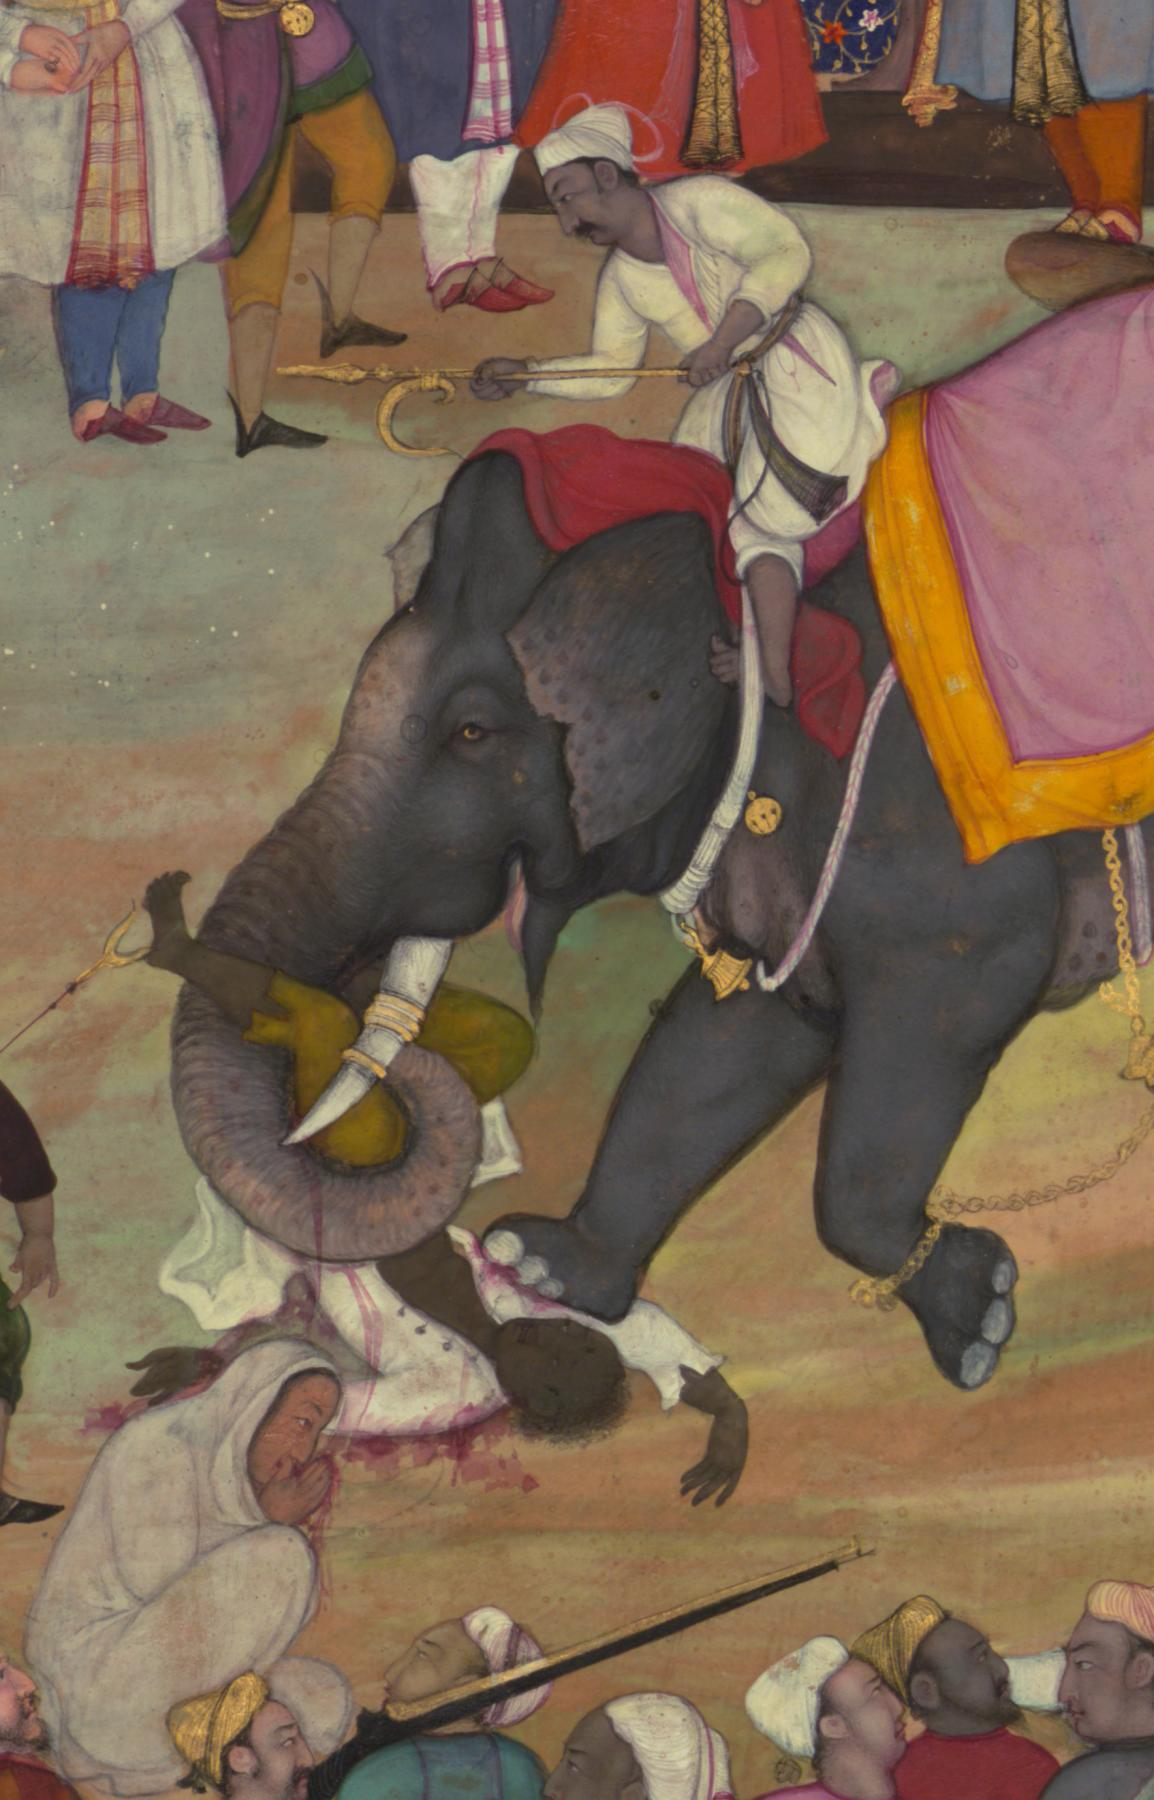 Execution by elephant - Wikipedia